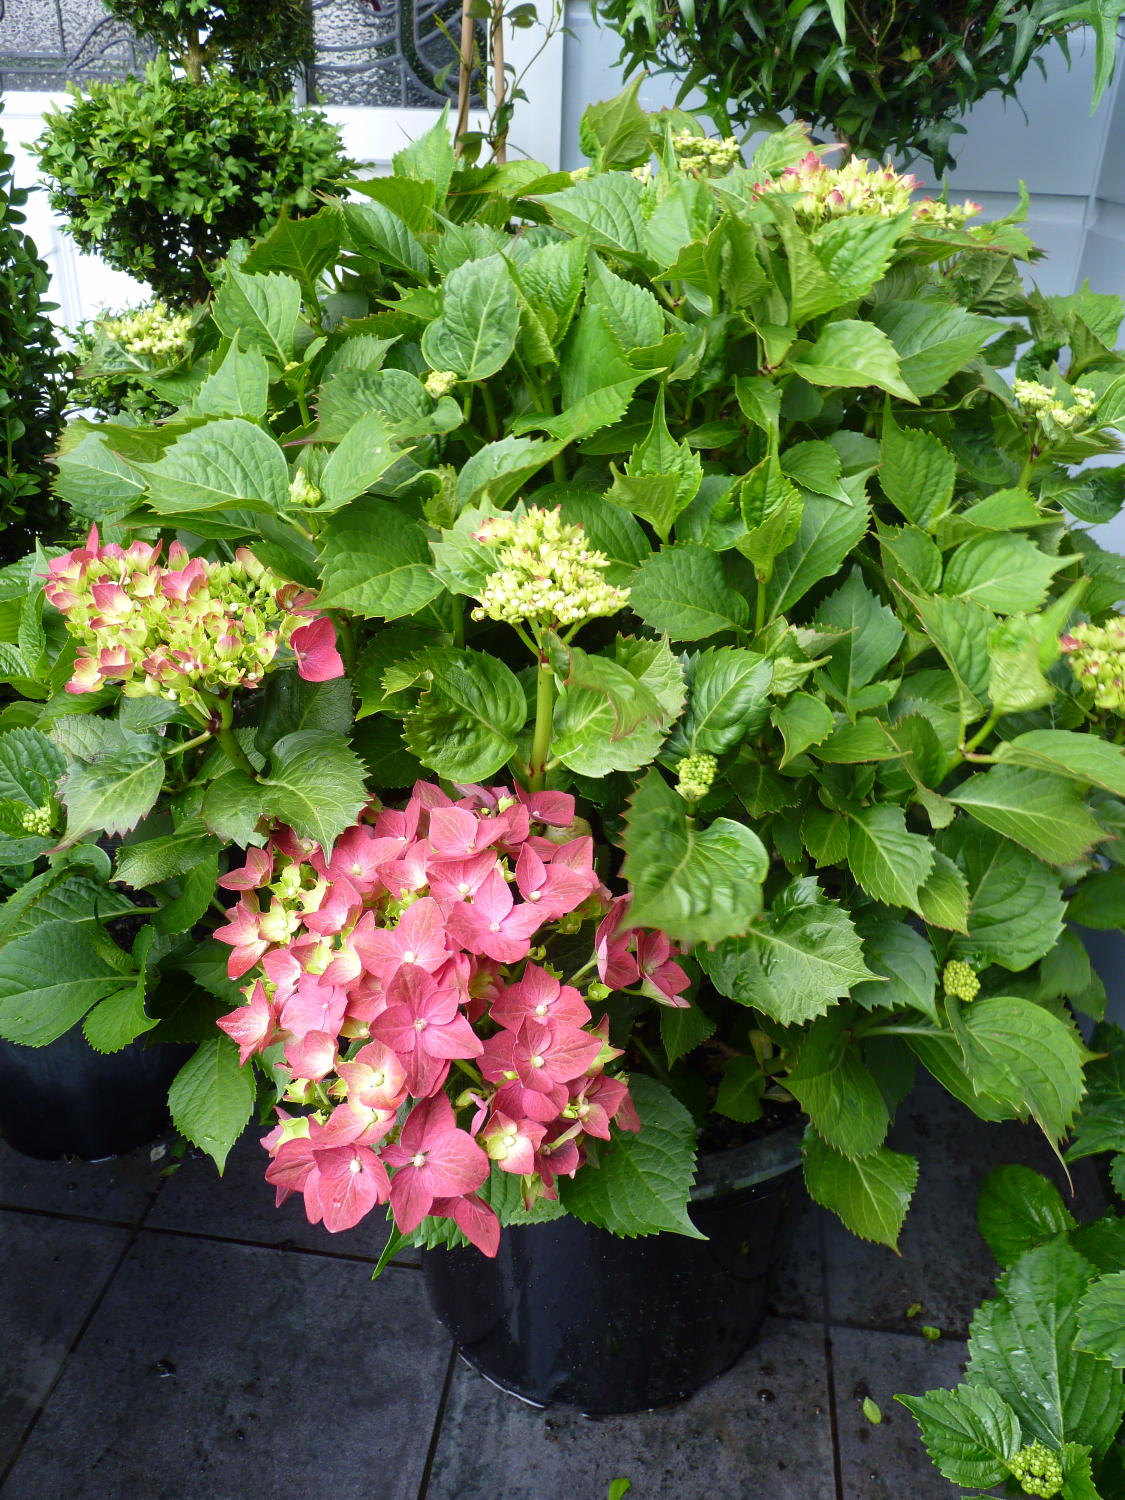 Deep pink - red hydrangeas